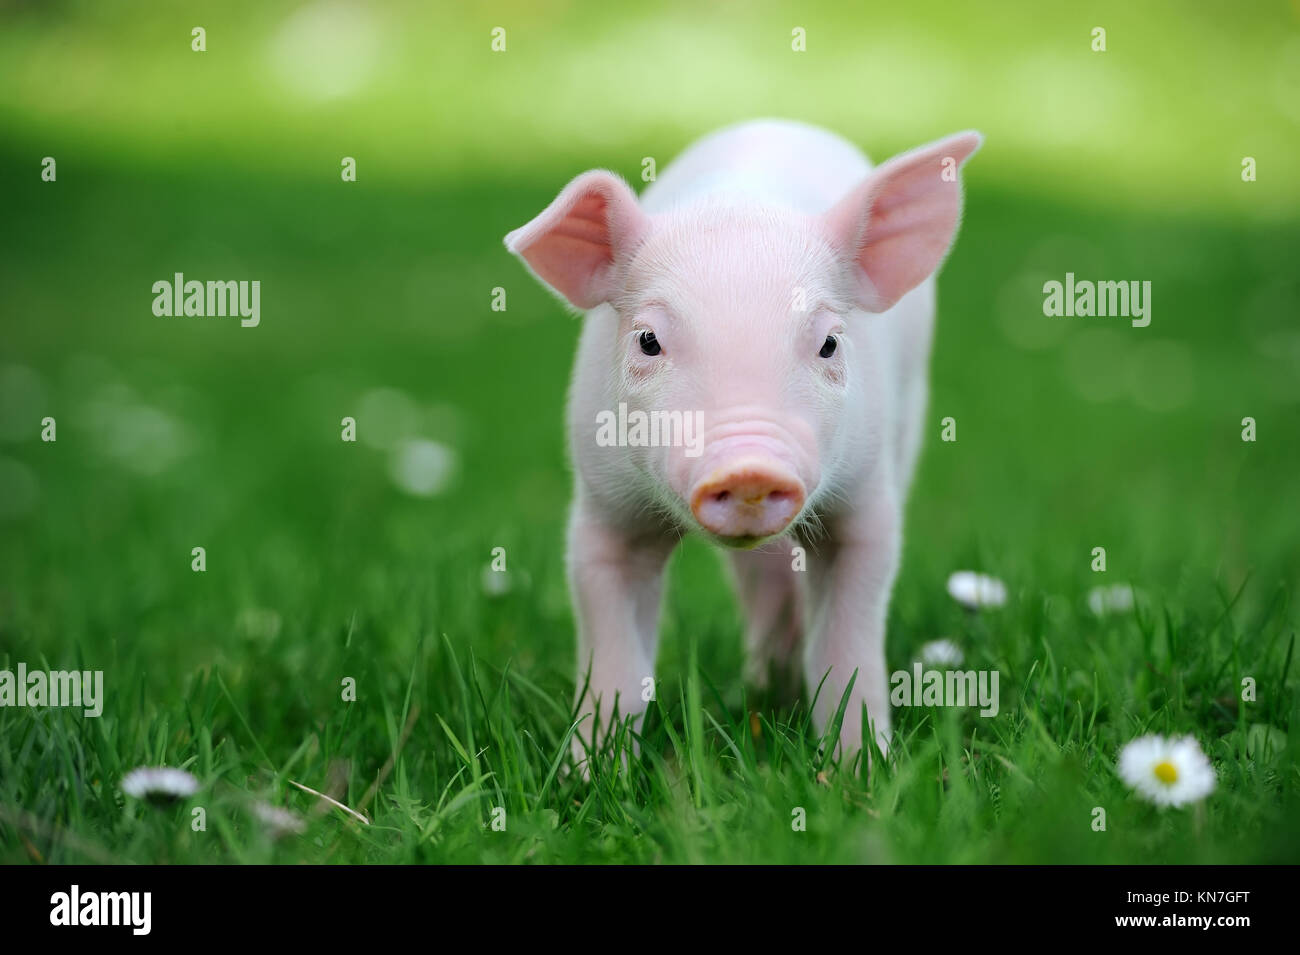 Young pig in a spring green grass - Stock Image